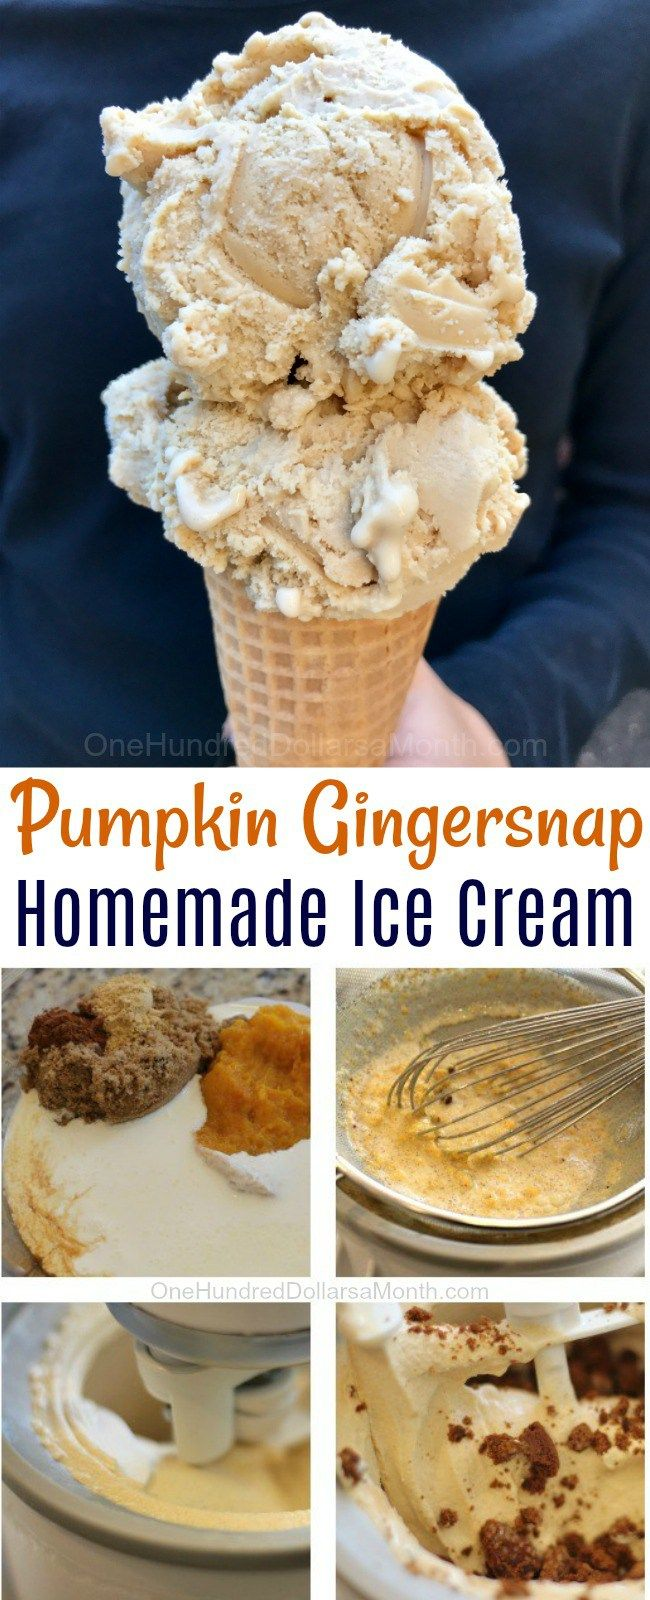 Hold on to your seat. This recipe for Homemade Pumpkin Gingersnap Ice Cream by my recipes is da' bomb! I'm not sure if Haggen Daz has pumpkin ice cream, but if they did, this would probably be real close to their recipe. Yummalicious in a cup baby! Ingredients 1 pt. whipping cream 1/2 cup milk …